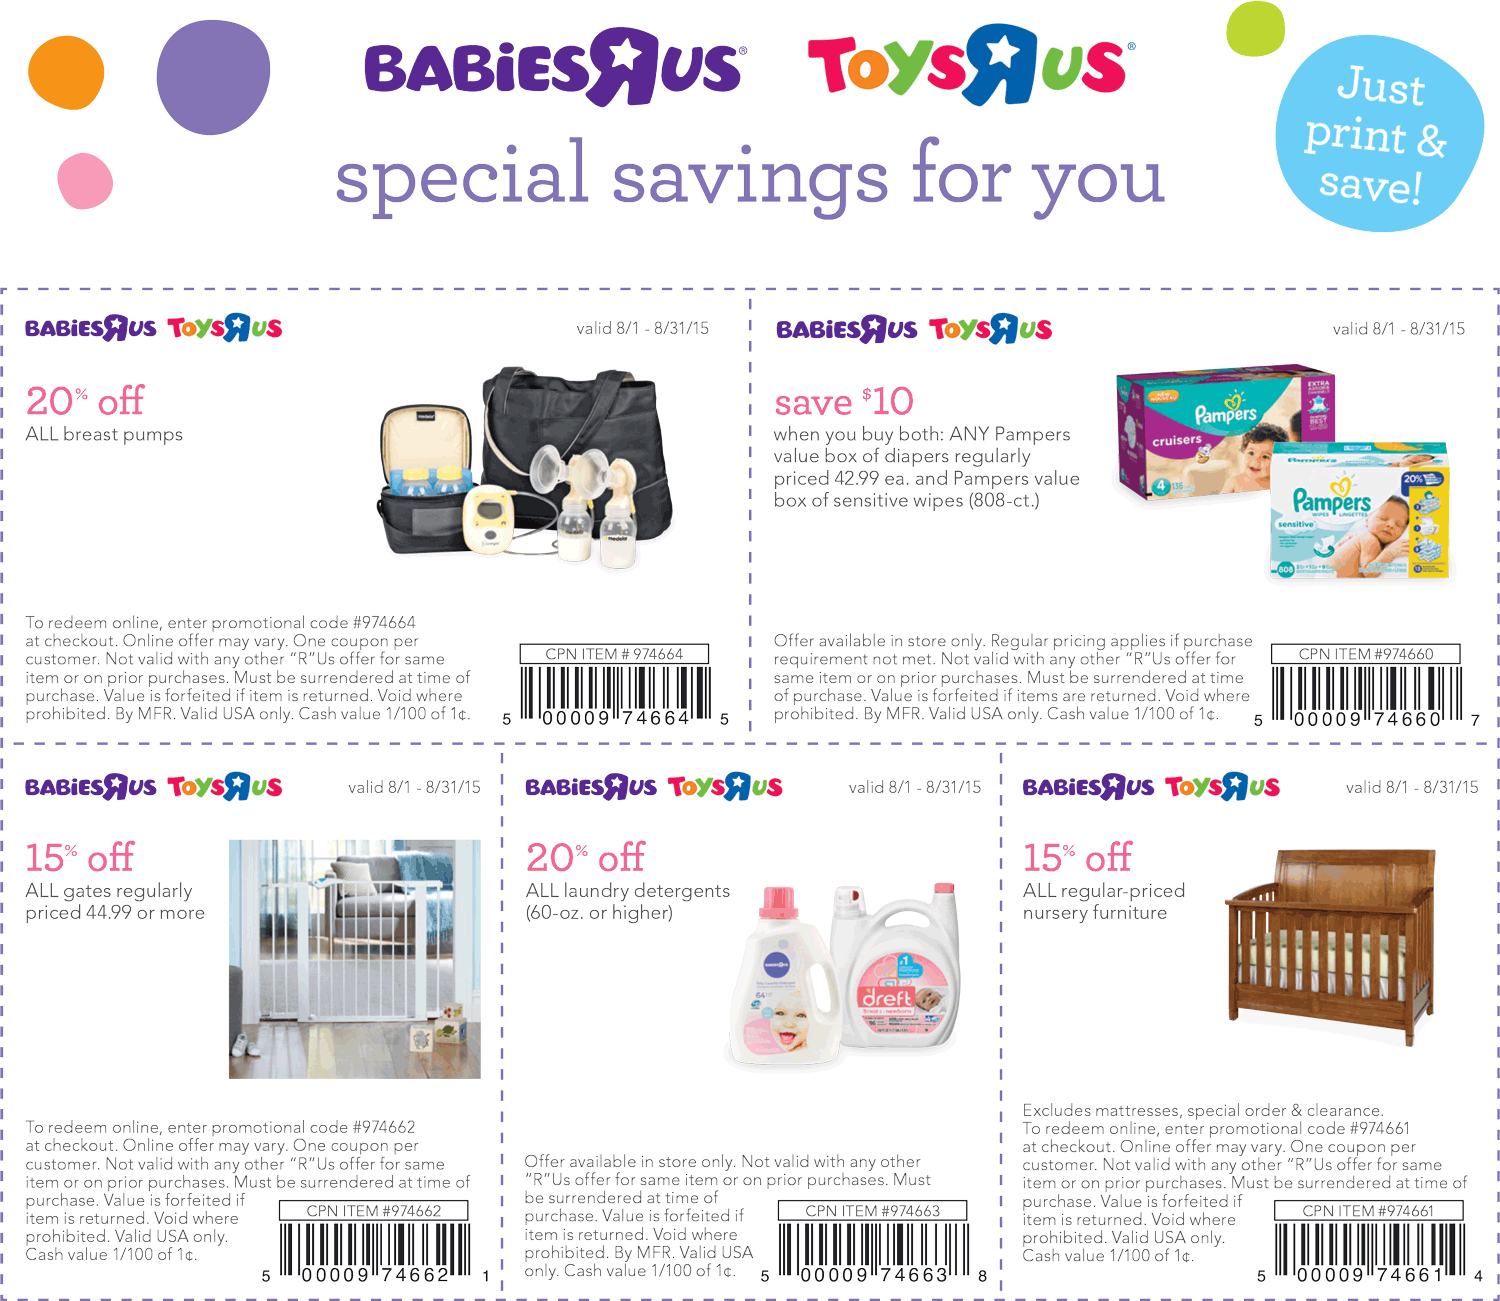 Toys R Us Coupon December 2016 $10 off diapers, 15% off furniture & more at Babies R Us & Toys R Us